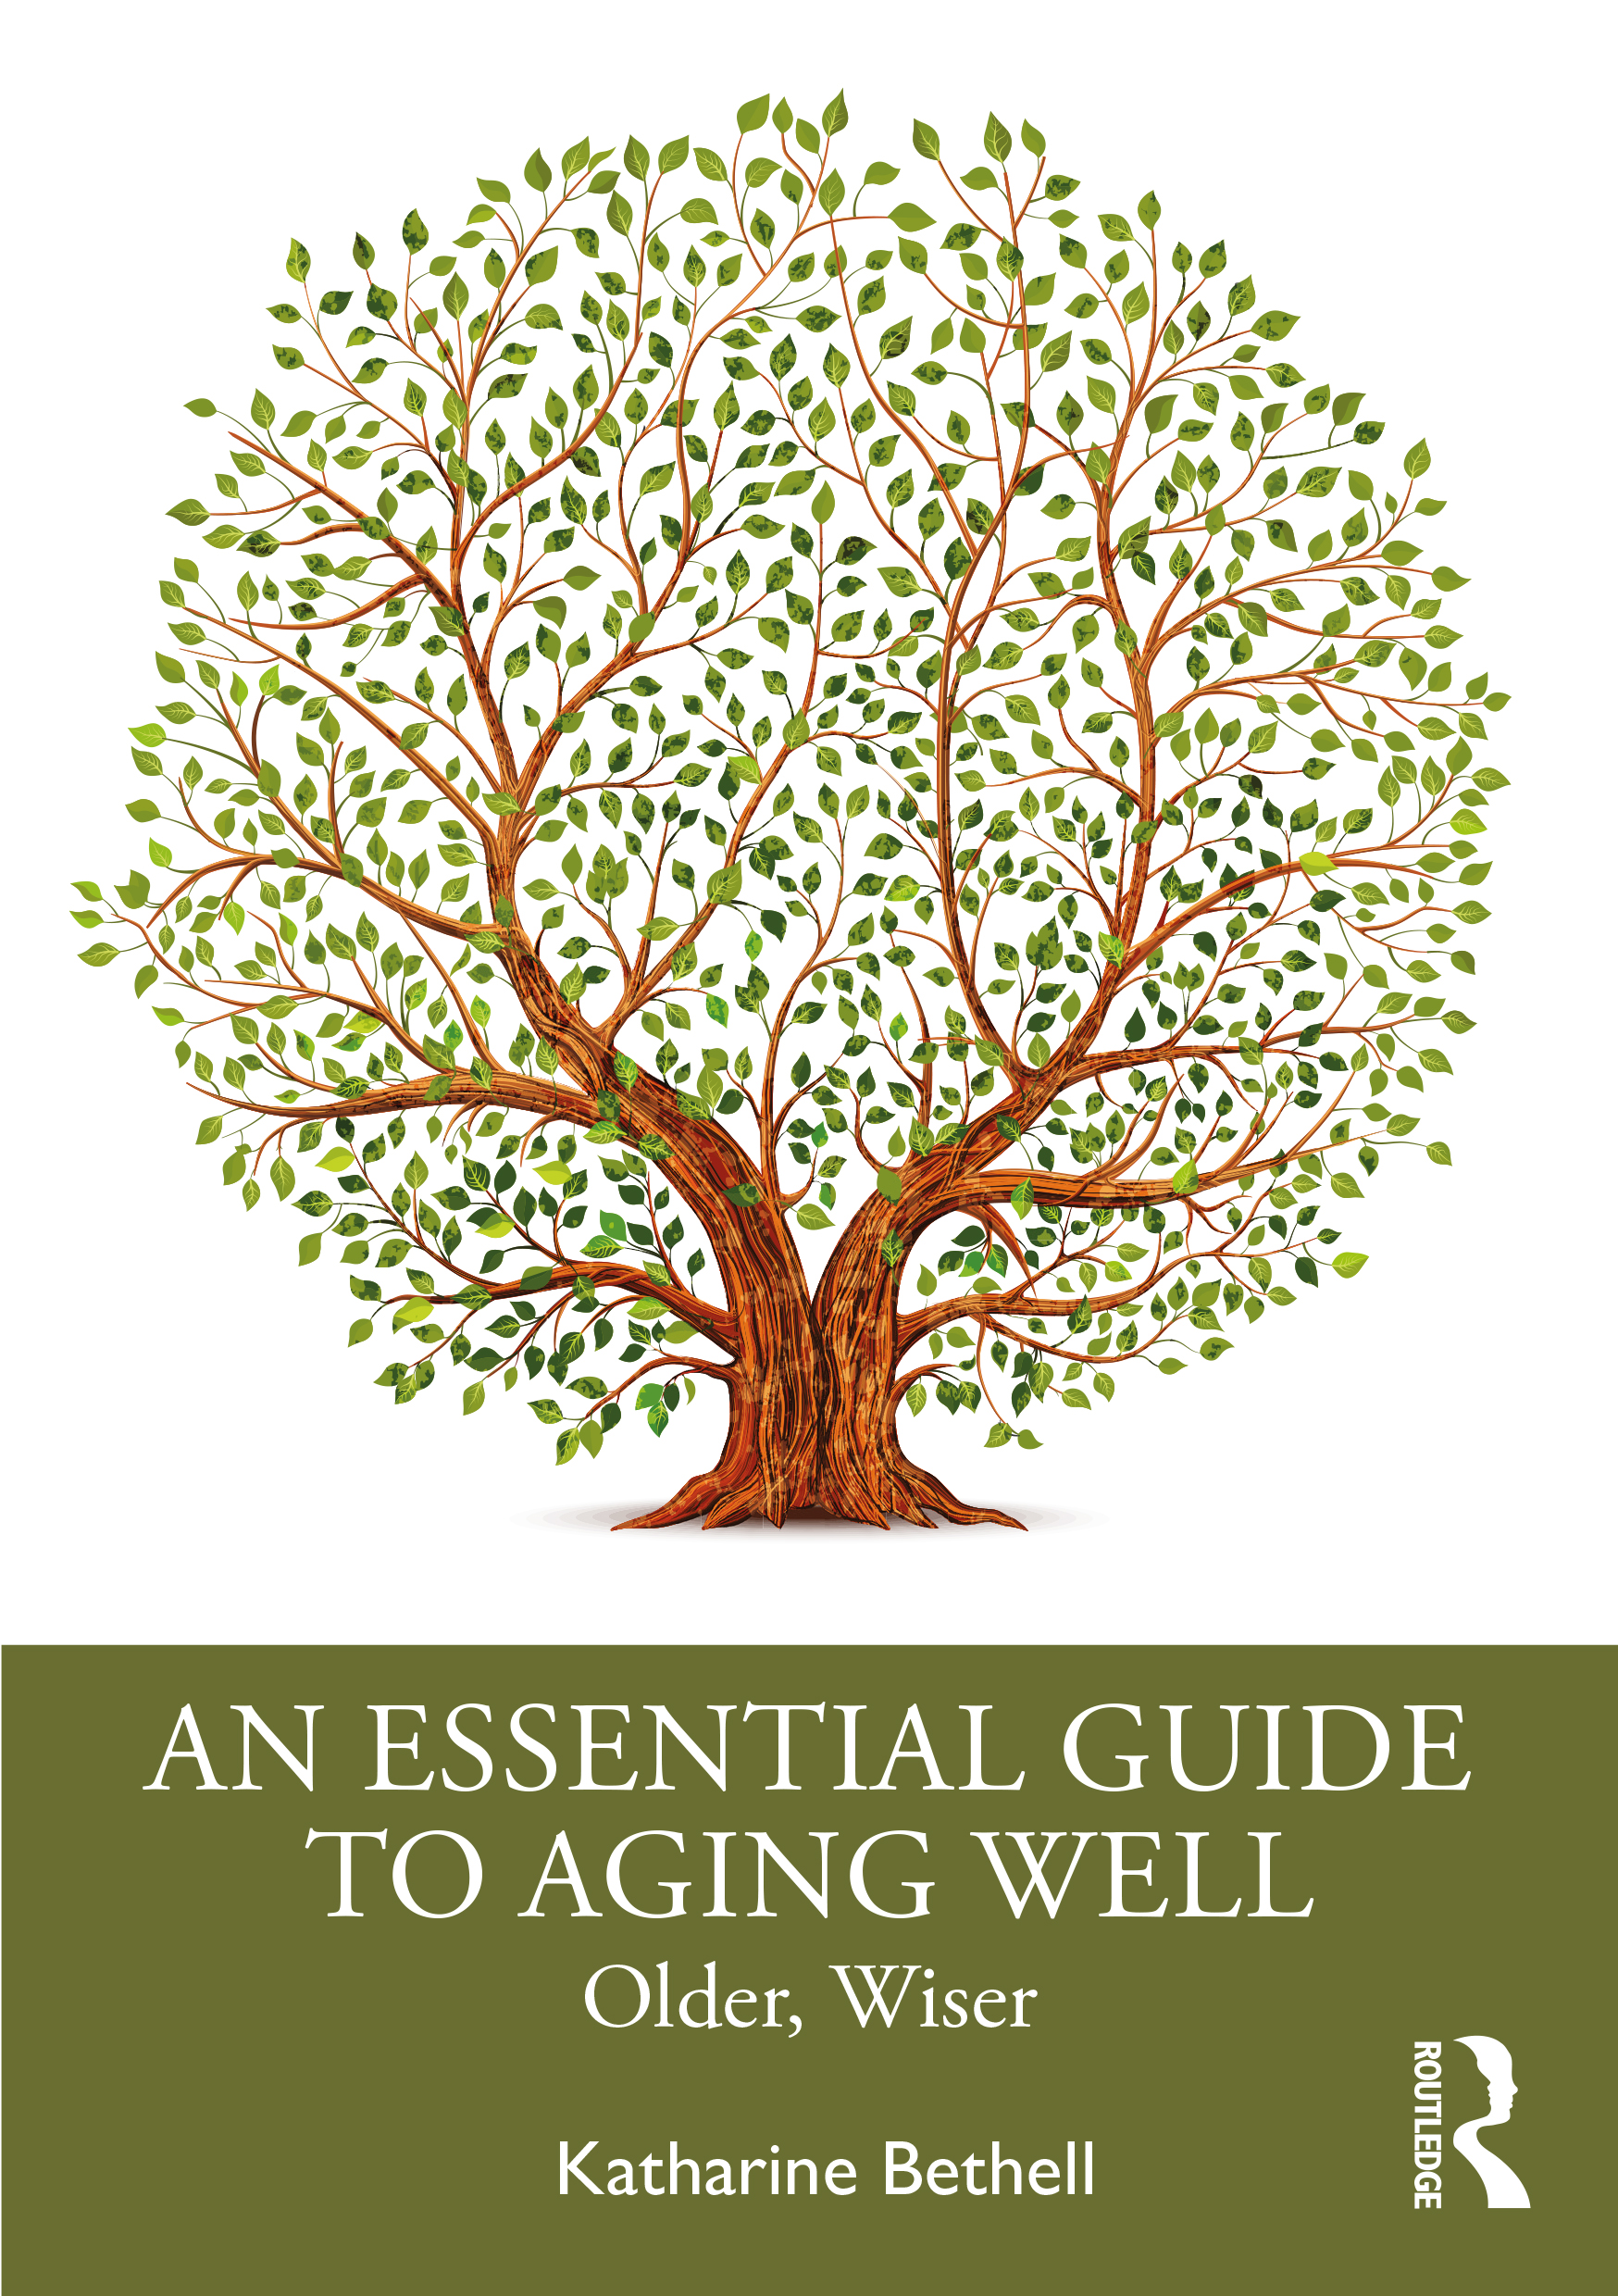 An Essential Guide to Aging Well: Older, Wiser book cover